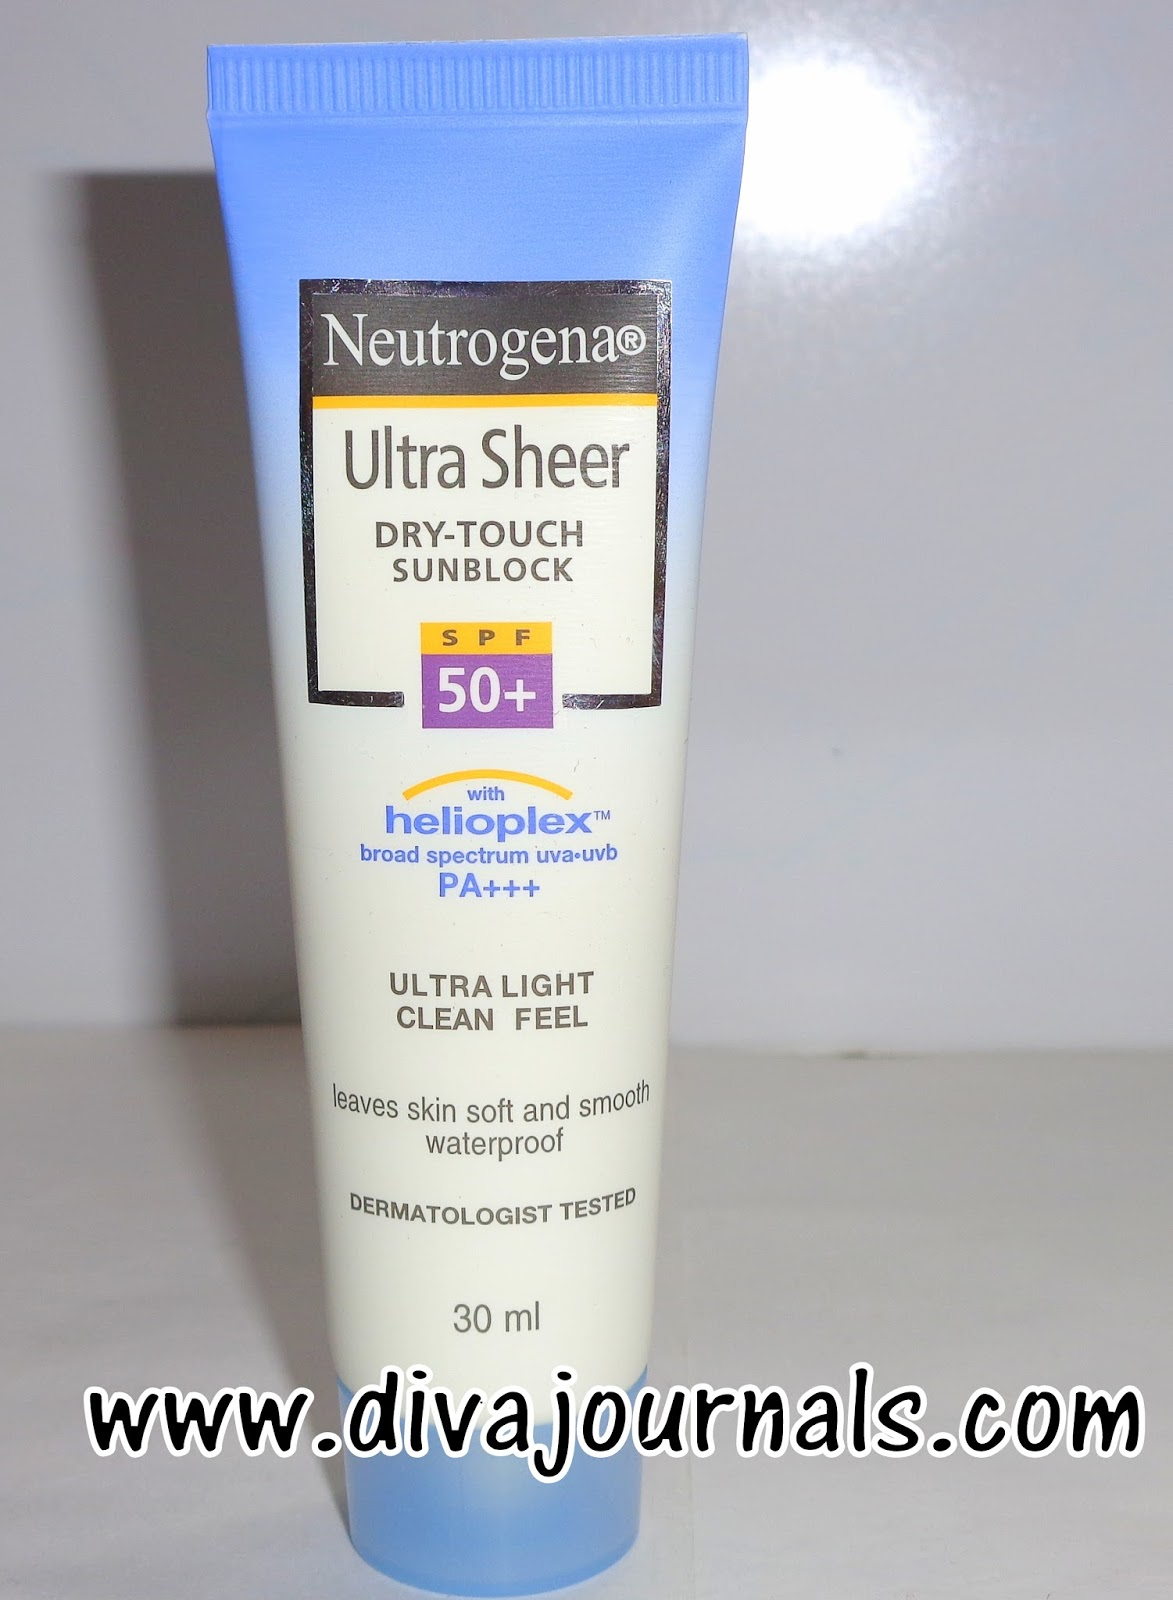 Neutrogena Ultra Sheer Dry-Touch Sunblock SPF 50+ Review